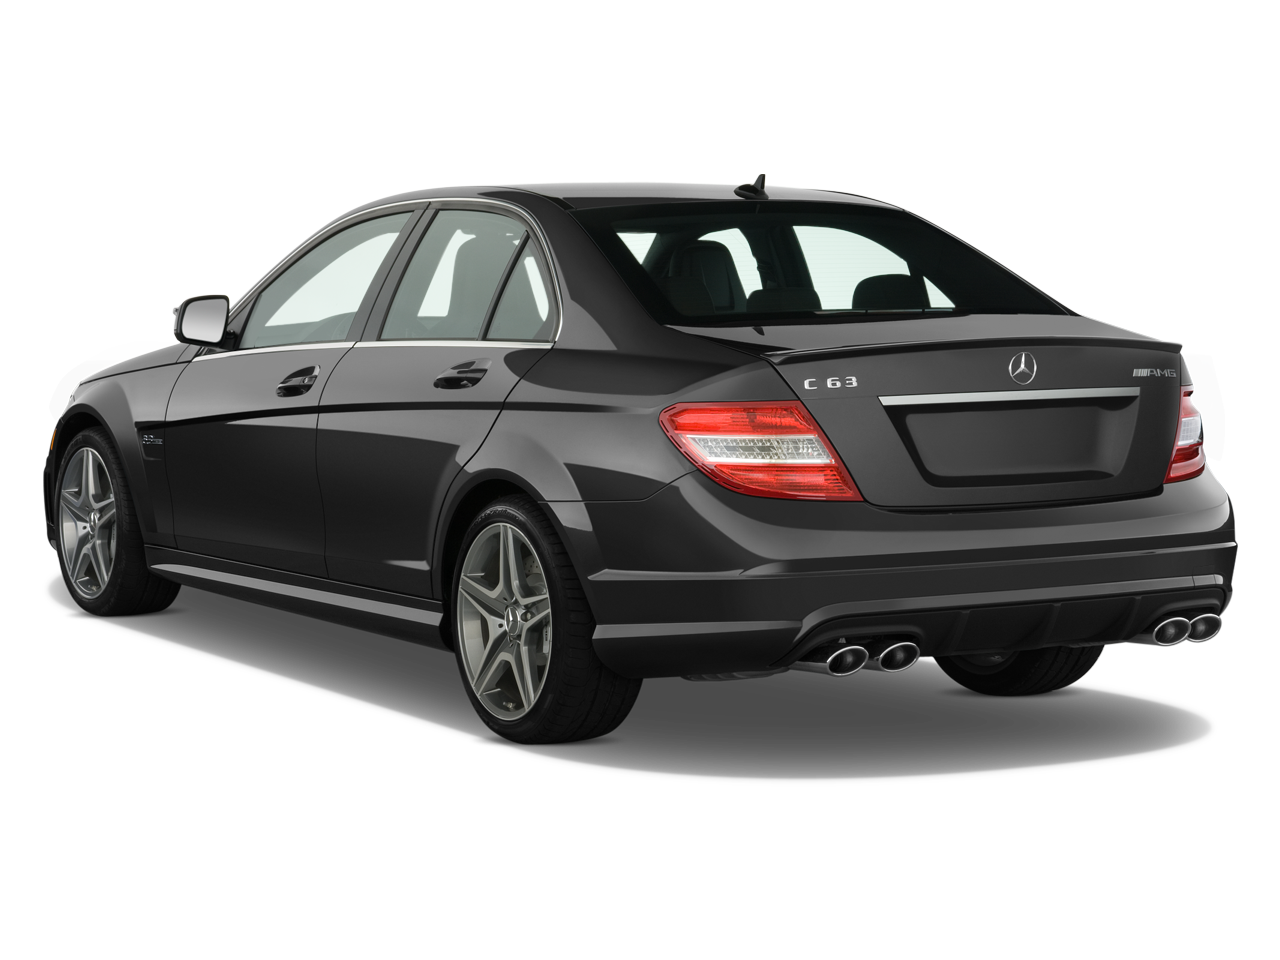 2009 mercedes benz c300 mercedes benz luxury sedan for Mercedes benz 300 amg